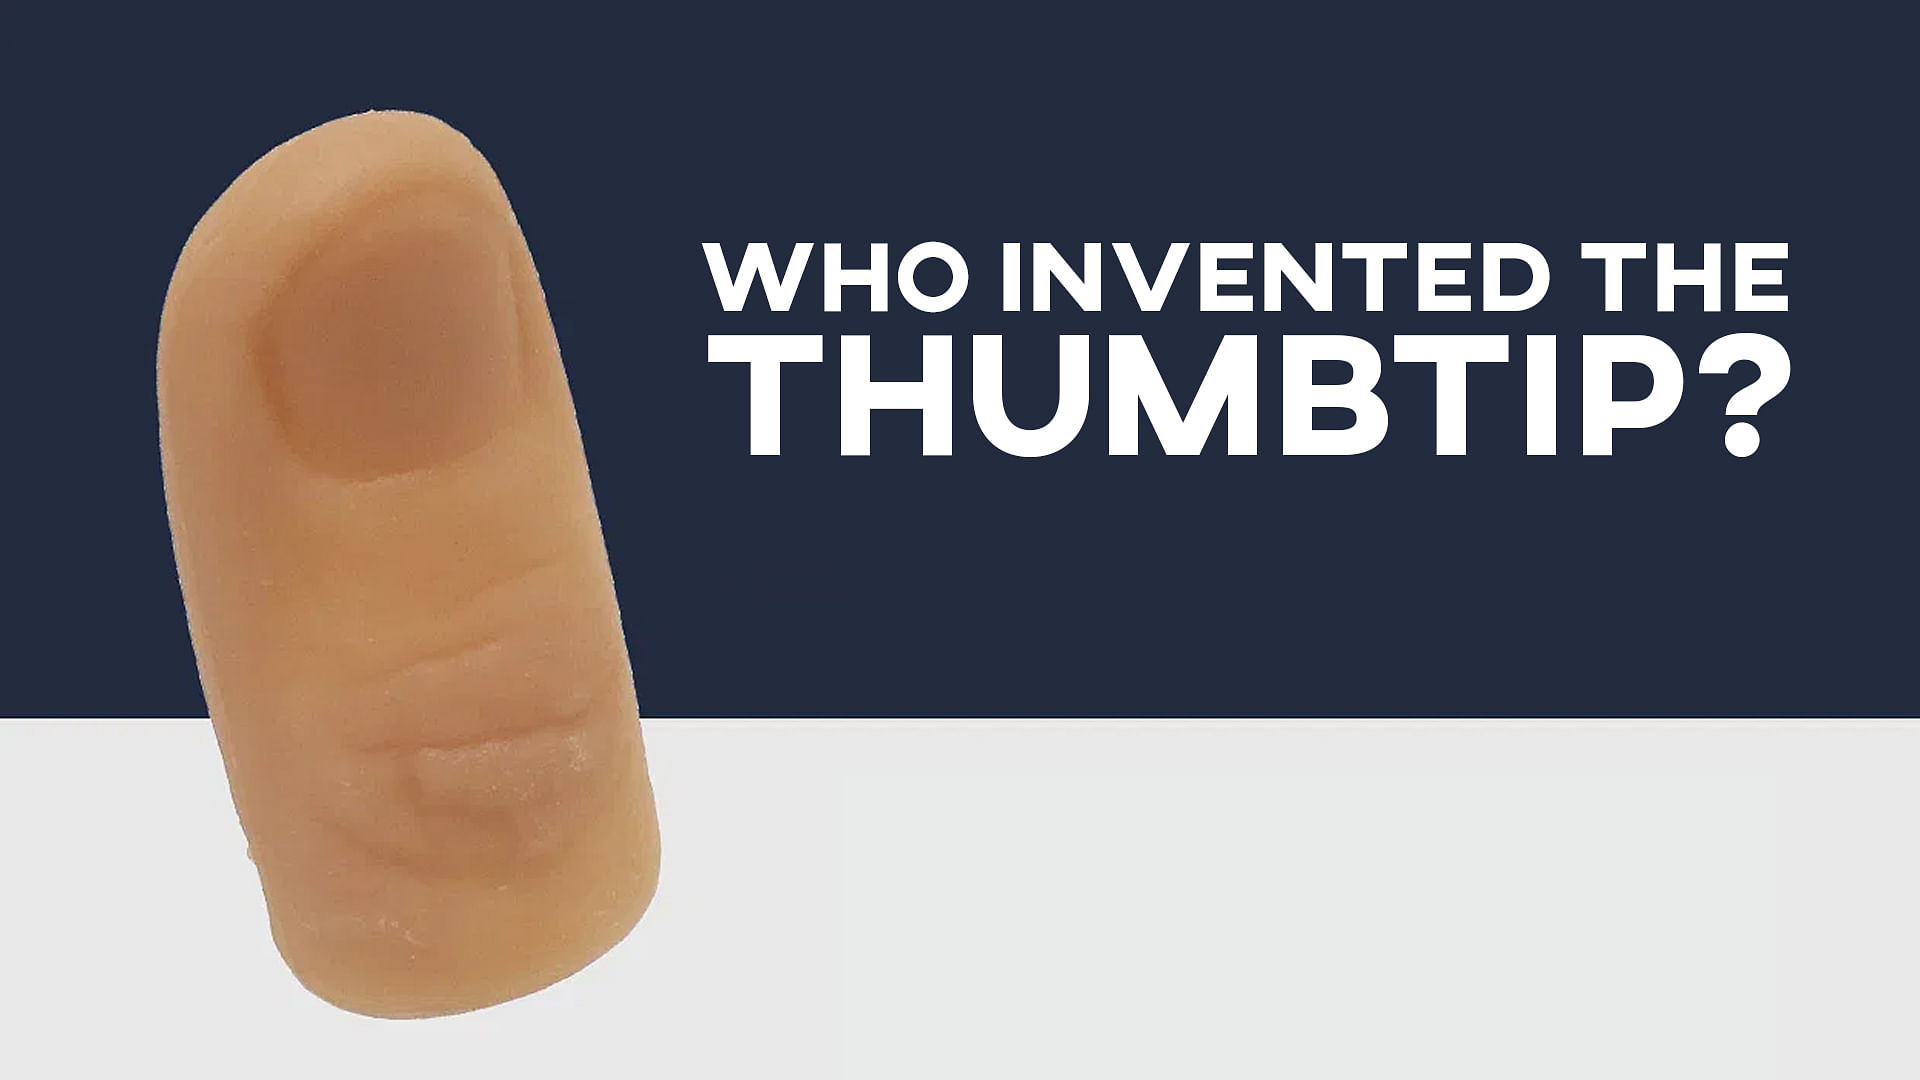 Who Invented the Thumbtip?